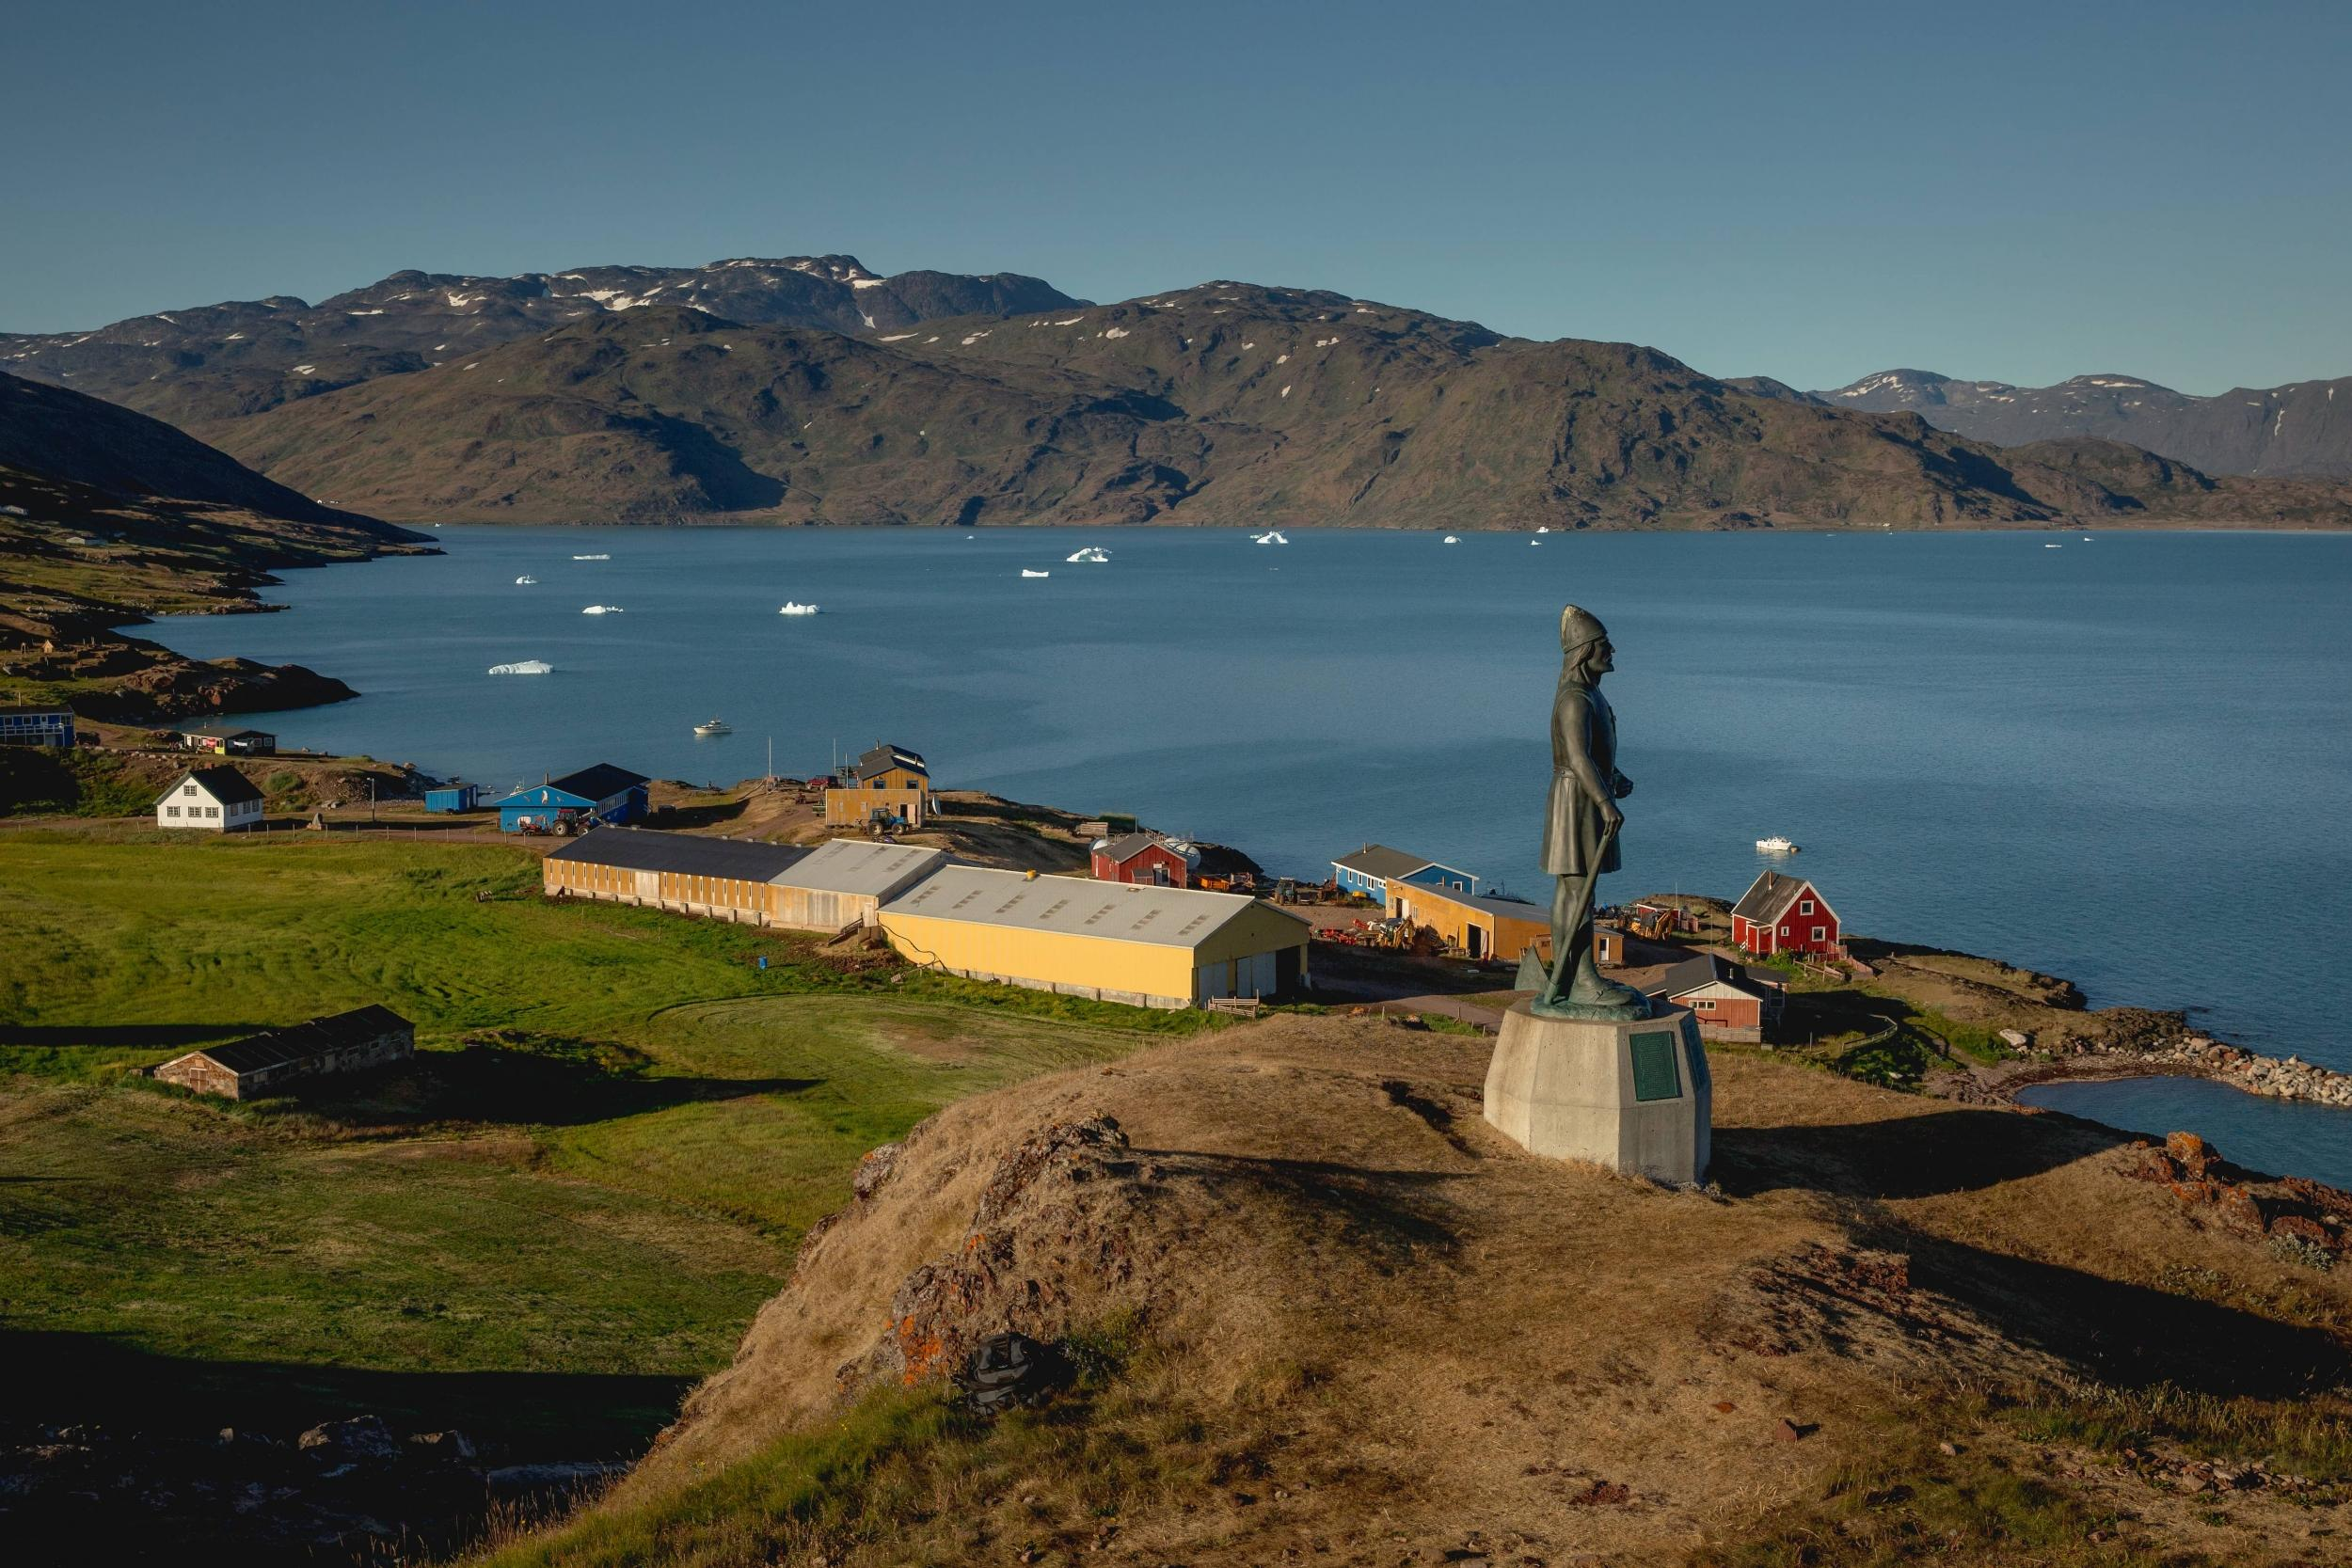 Looking out over Qassiarsuk in South Greenland with the statue of Leif Ericson in the foreground. Photo by Mads Pihl